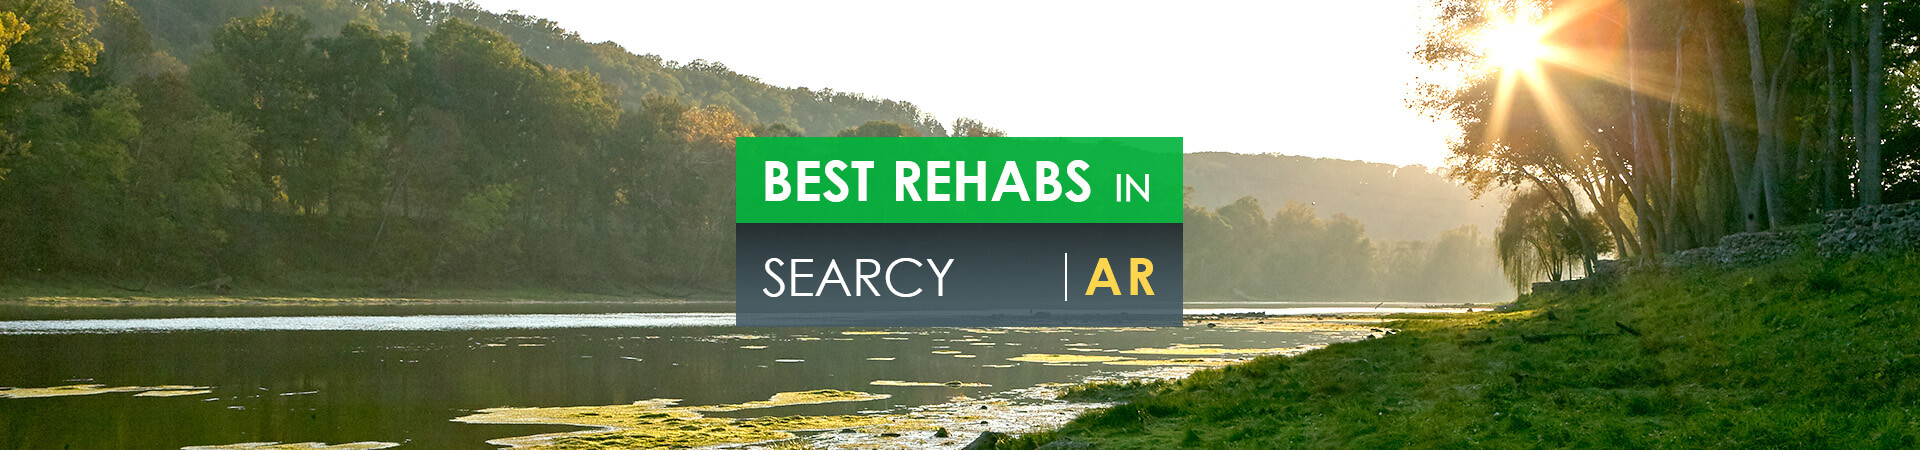 Best rehabs in Searcy, AR